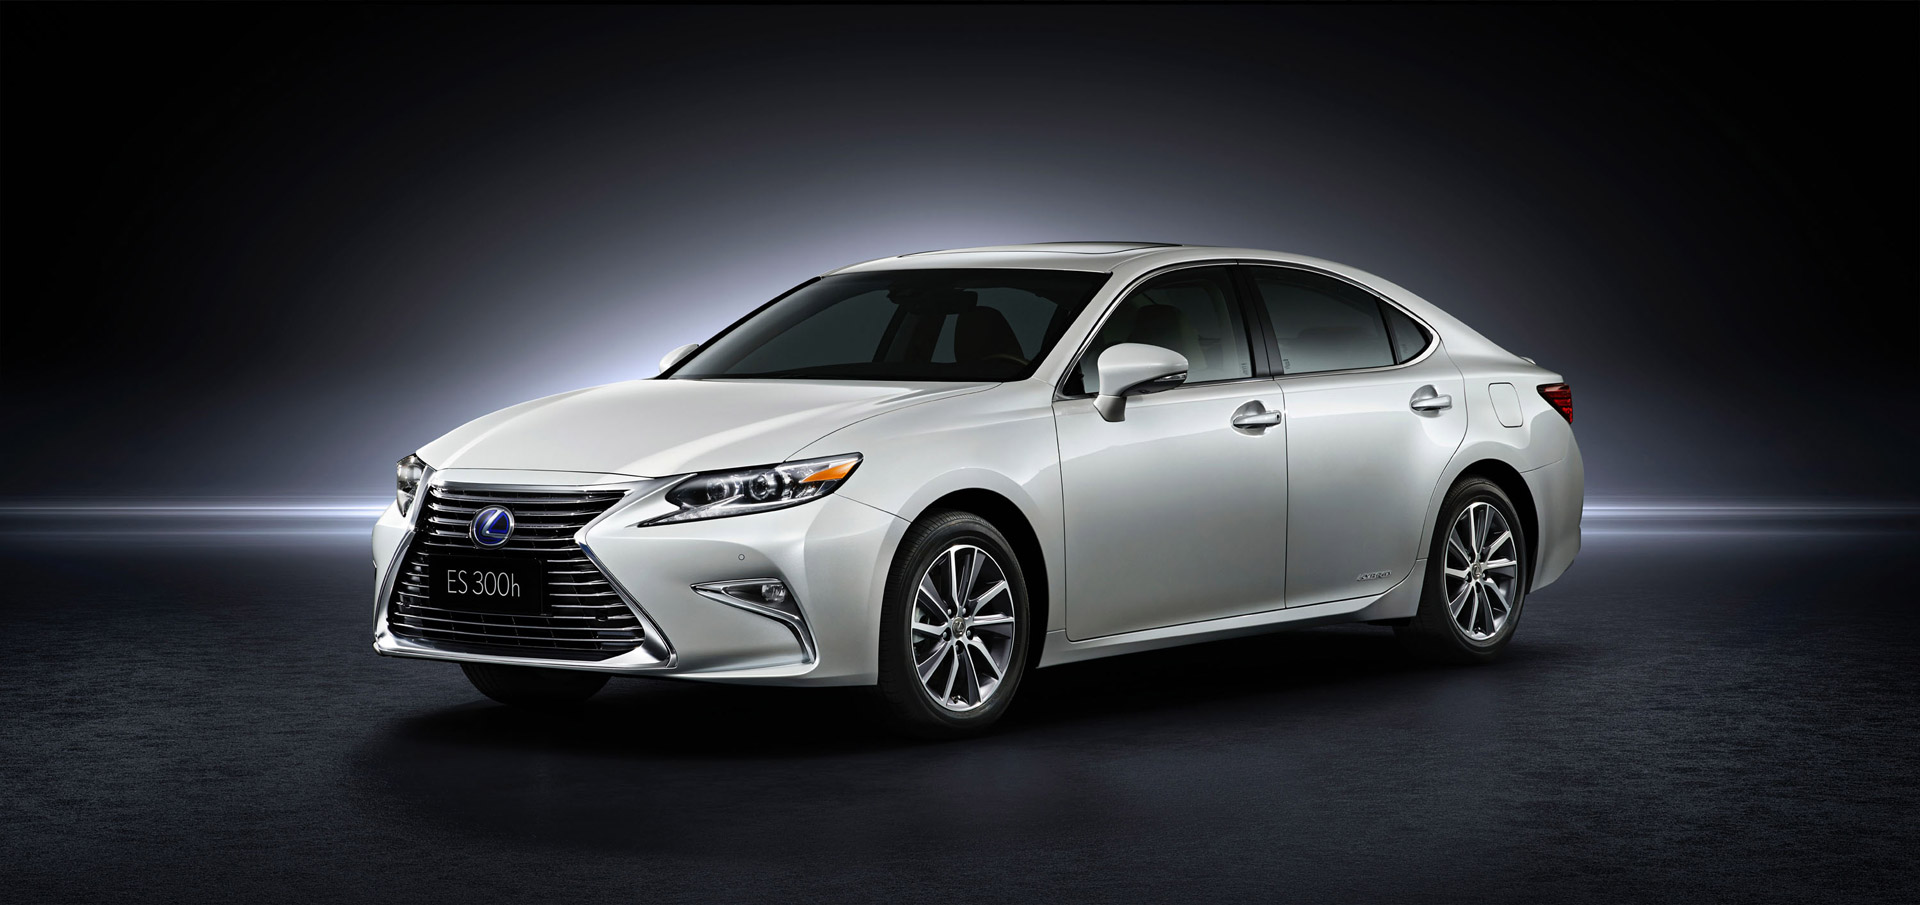 Must See Luxury Cars And Sedans At The 2017 Detroit Auto: 2016 Lexus ES Debuts With New Look At Shanghai Auto Show